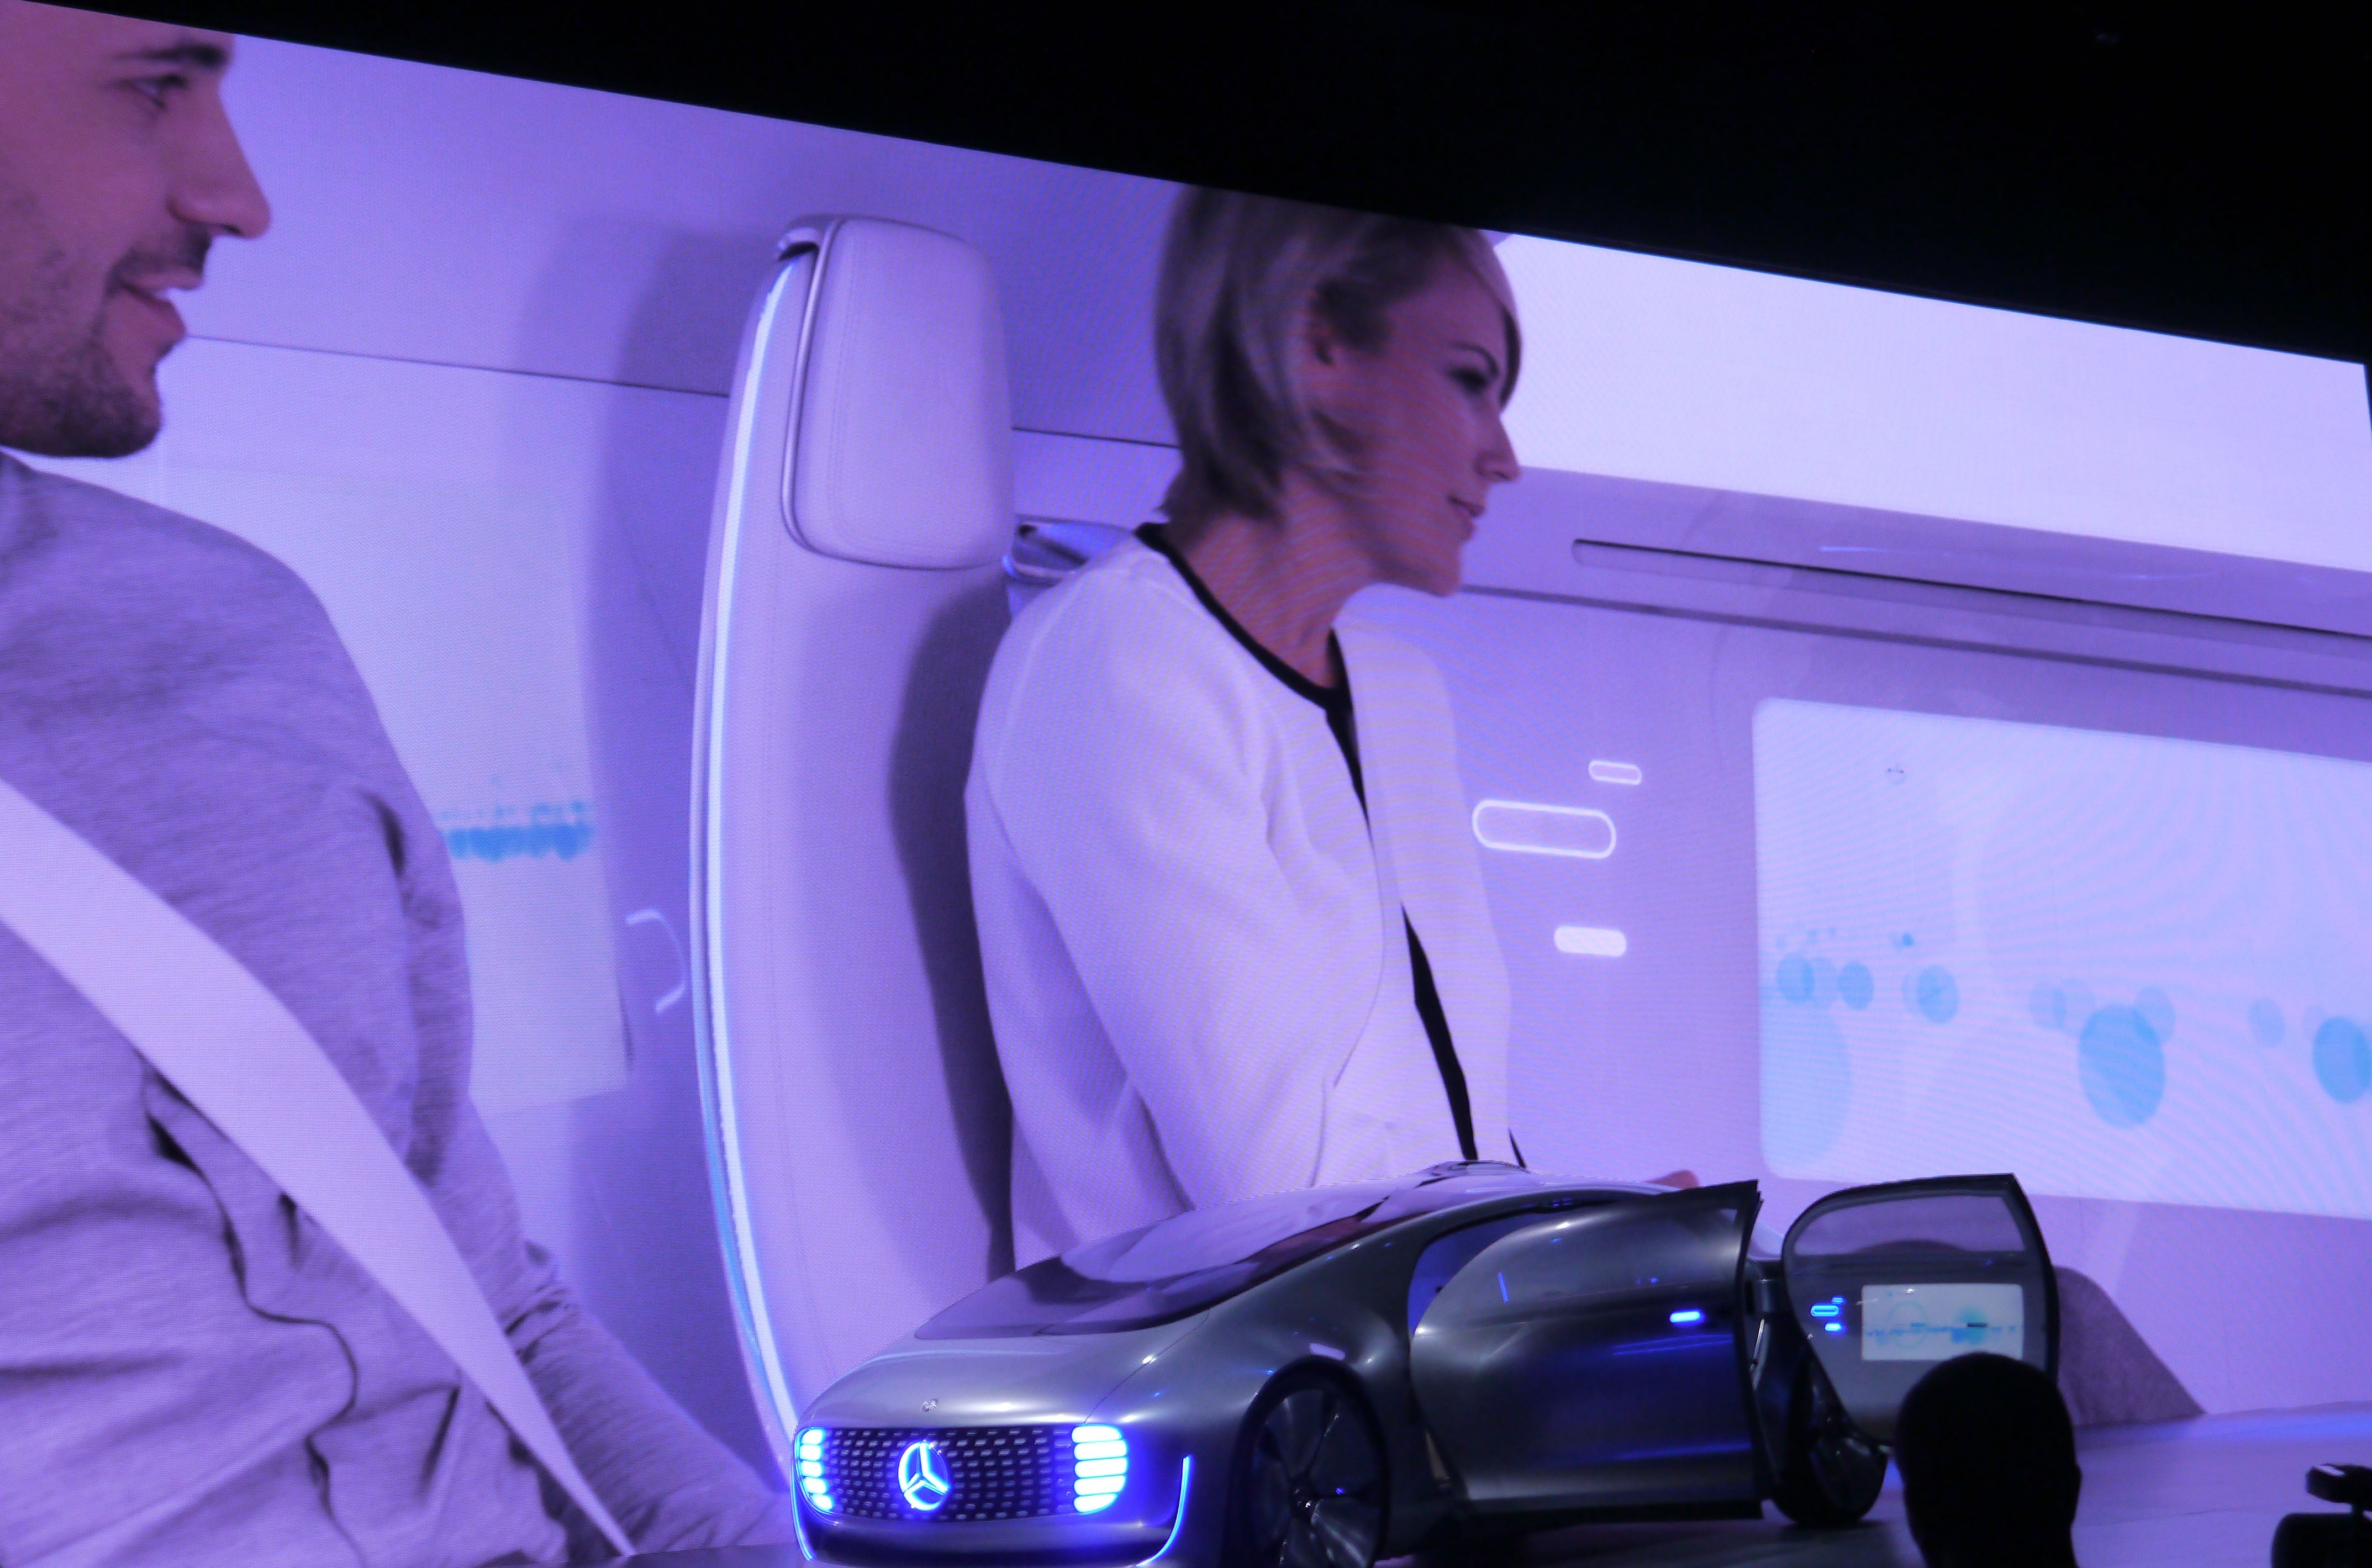 The New Mercedes Self-Driving Car Concept Is Packed Full of Future